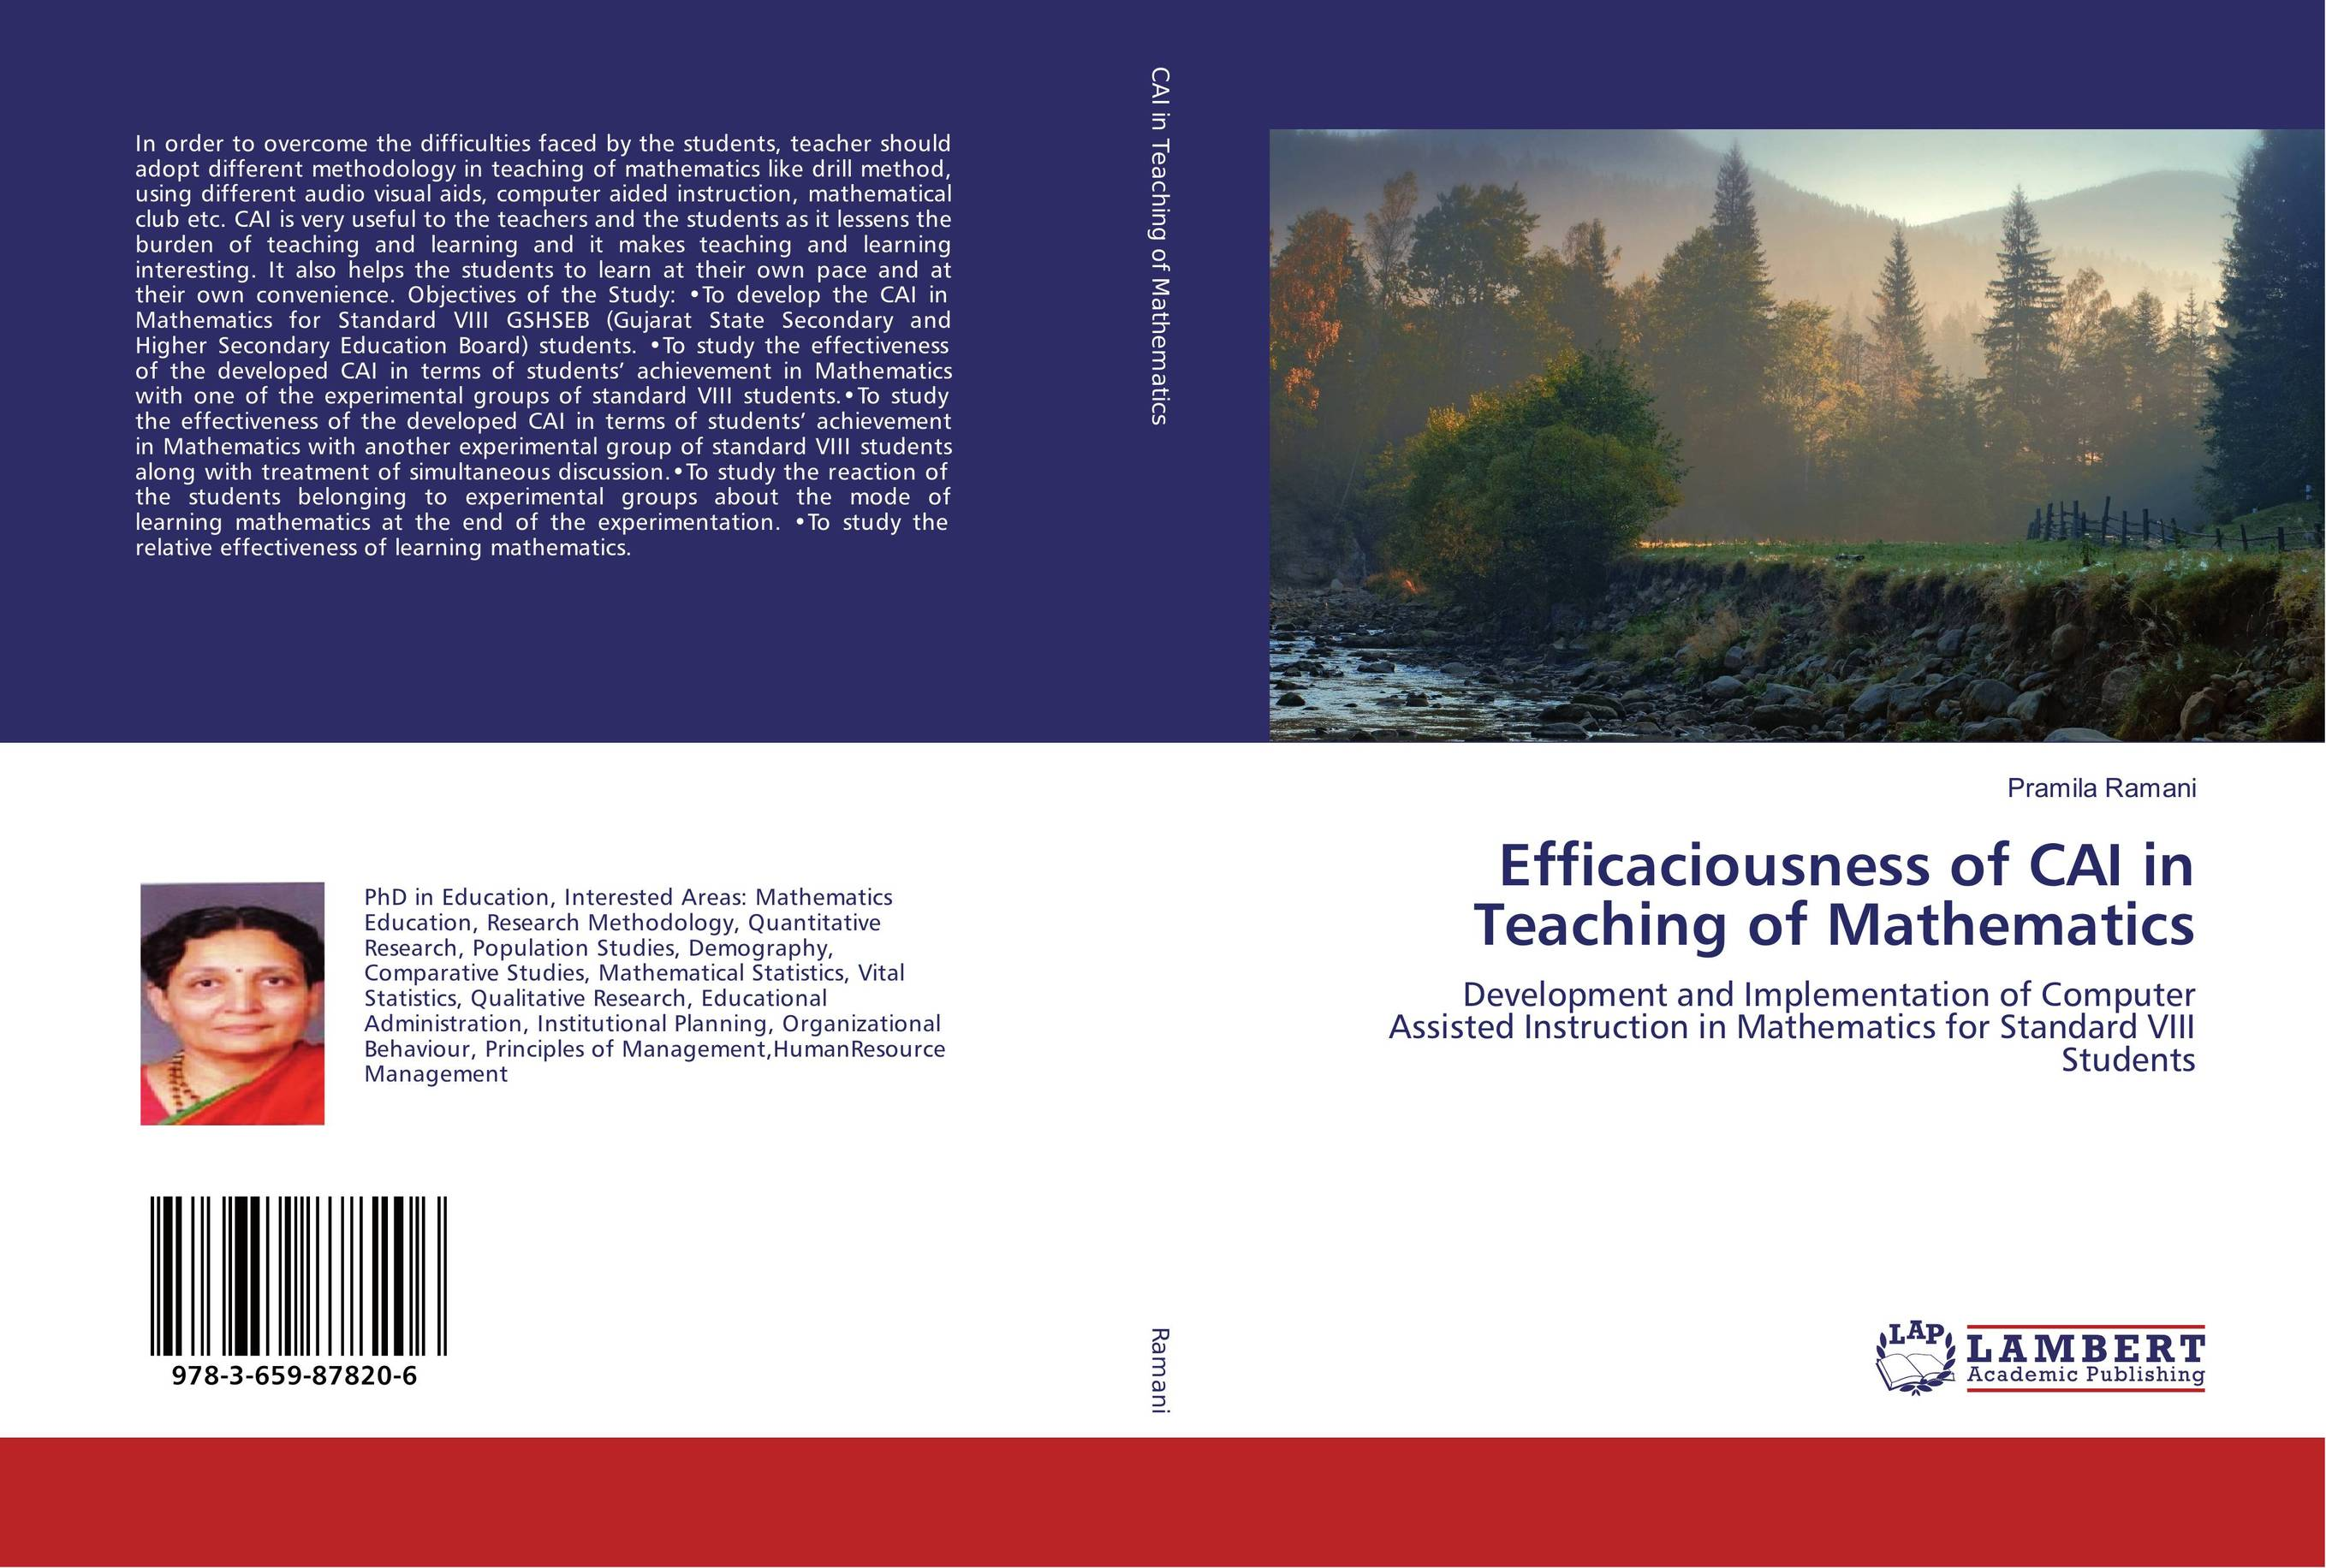 Efficaciousness of CAI in Teaching of Mathematics 6pcs the wisdom of the classics in comics cai zhizhong zen saying liuzu tanjing shi cai gentan the legend of the six dynasty